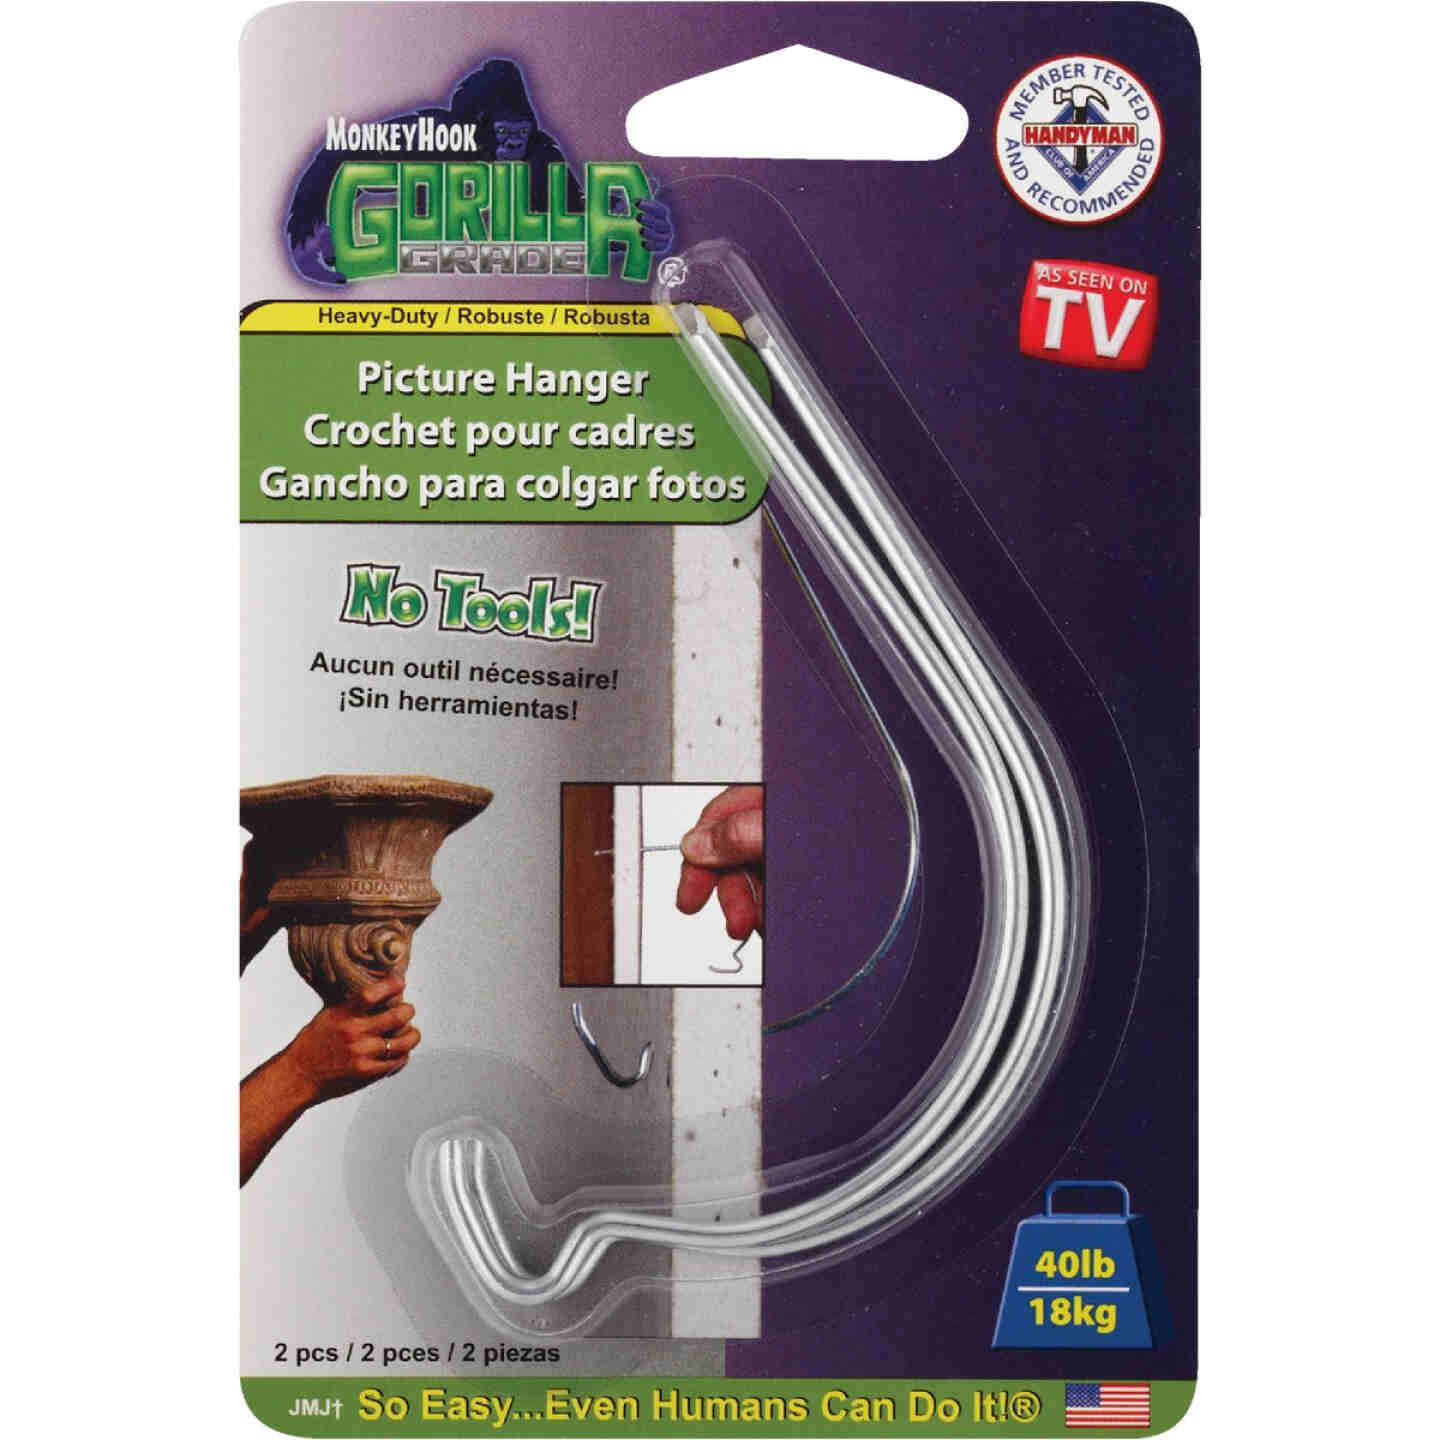 Monkey Hook Gorilla Grade Hanger with Perfect Install Guide (2 Count) Image 2